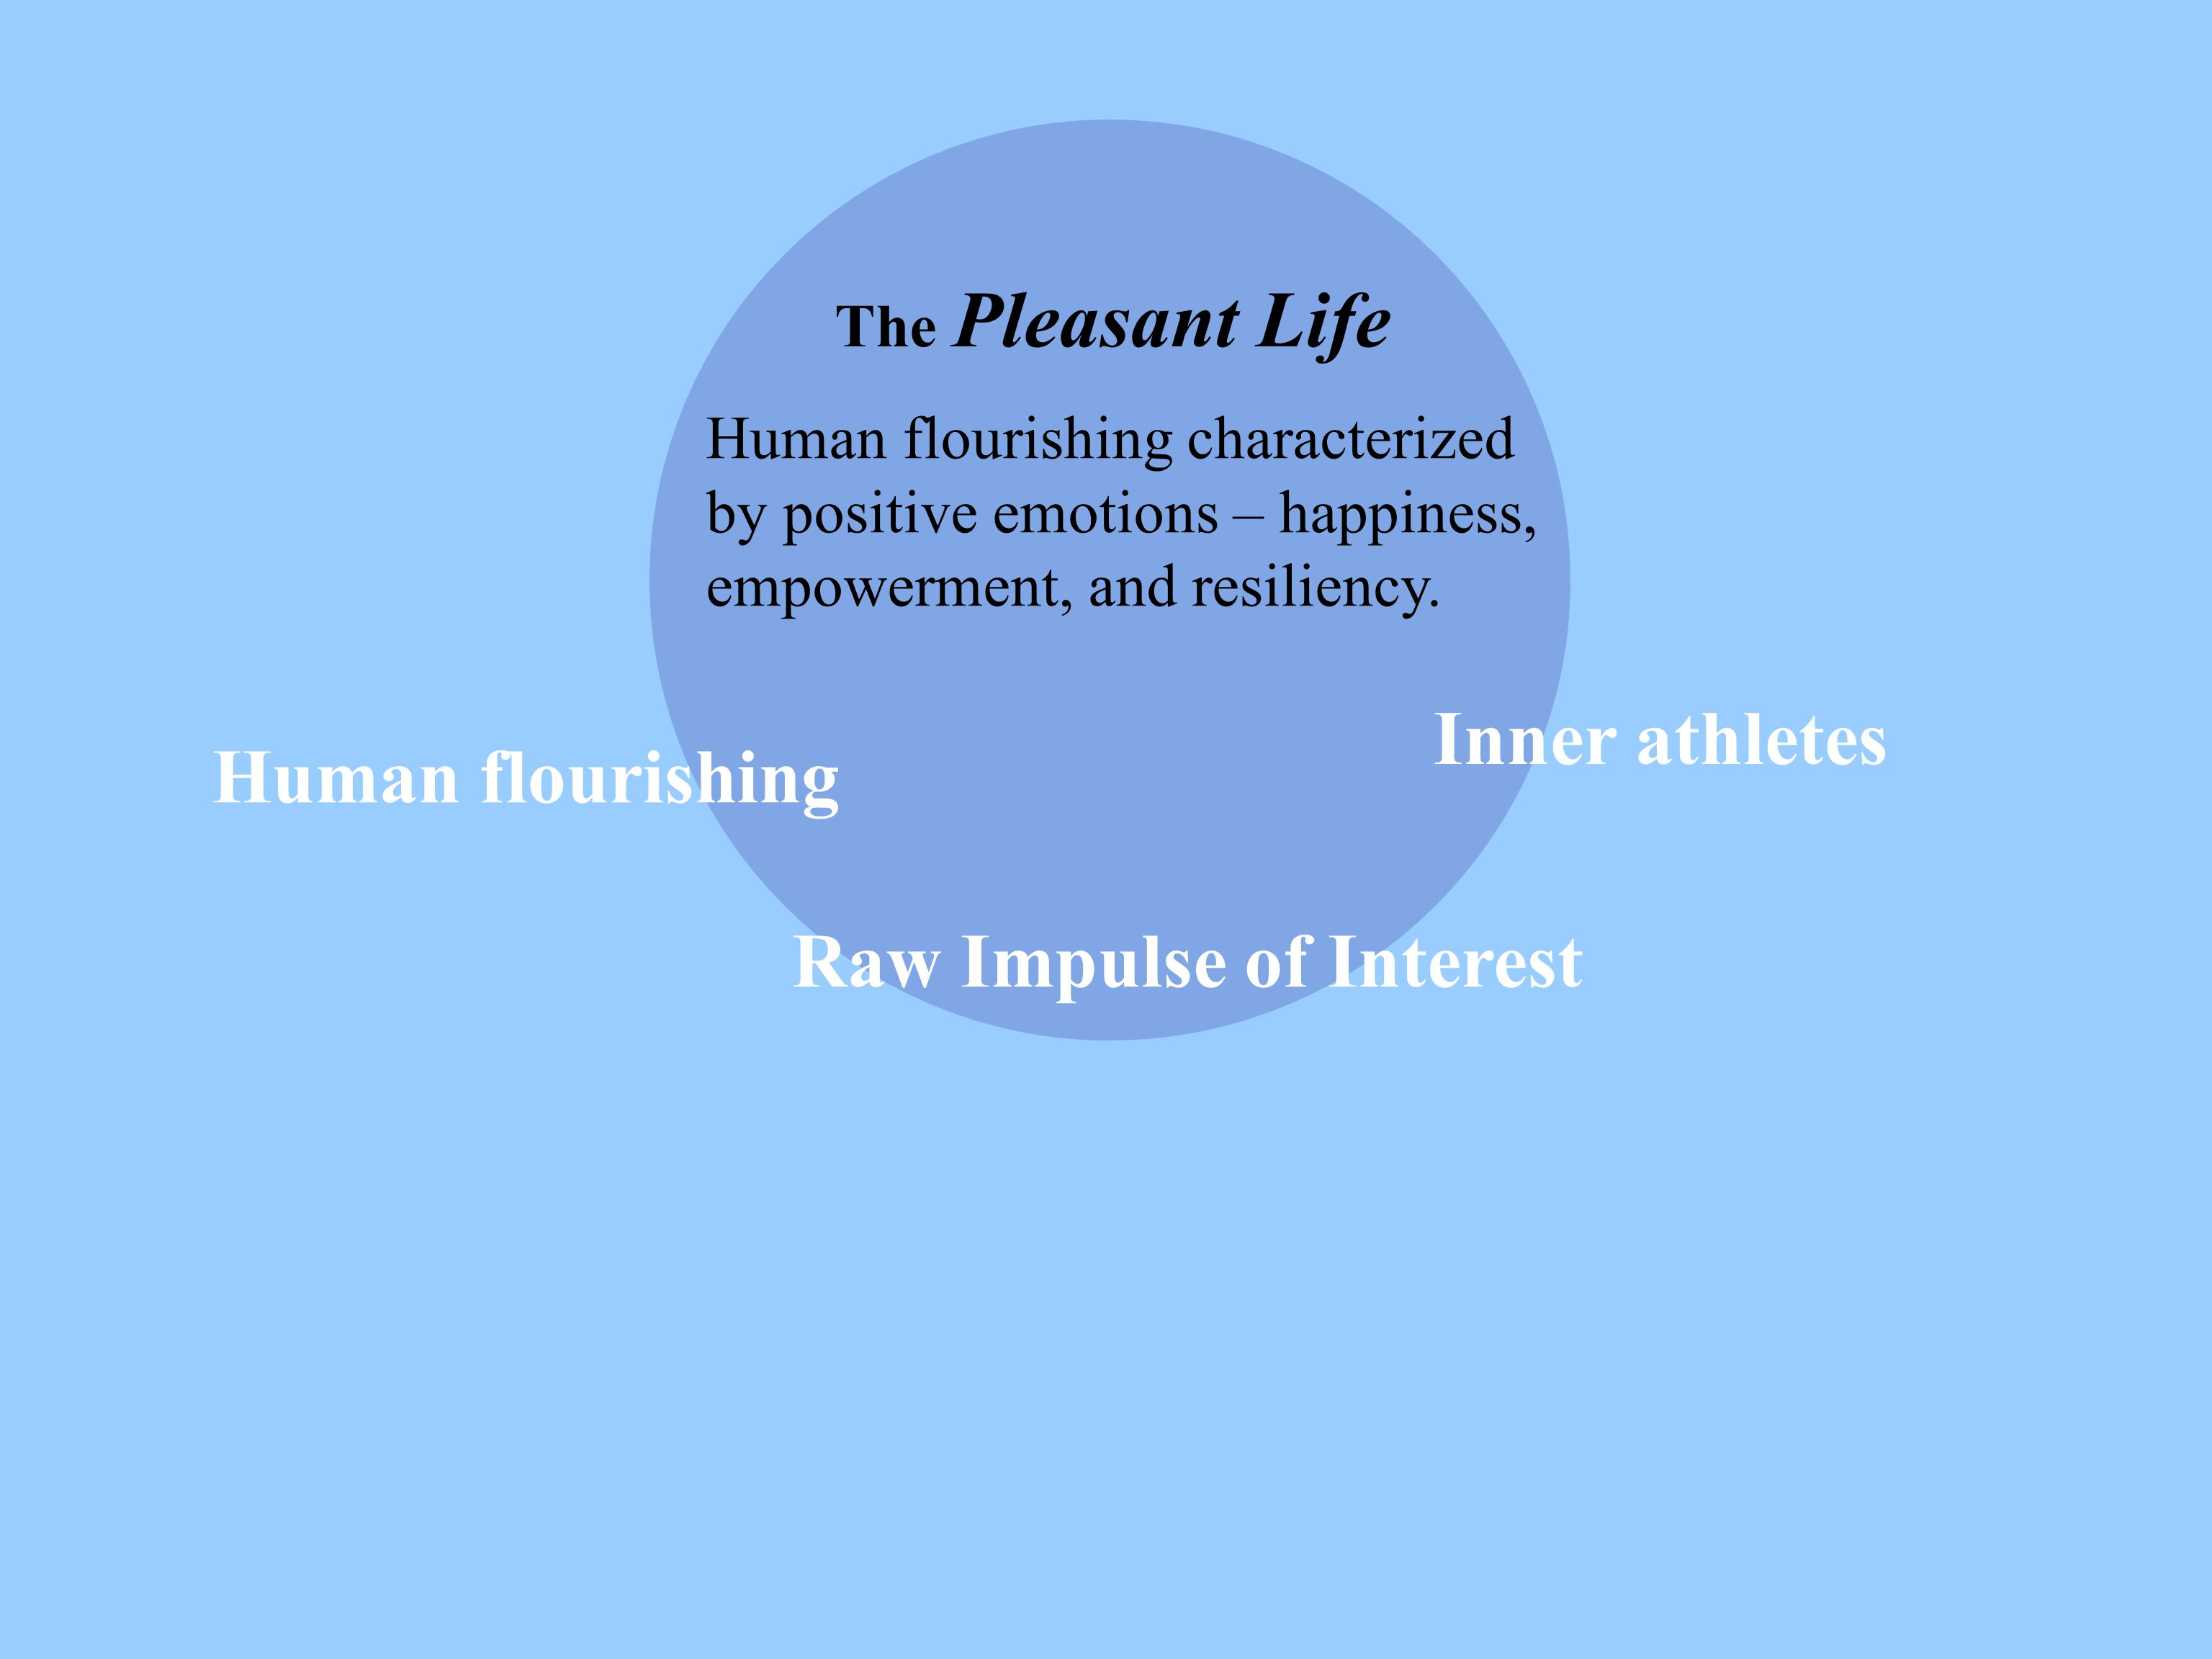 The Pleasant Life Human flourishing characterized by positive emotions – happiness, empowerment, and resiliency. Human flourishing Inner athletes Raw